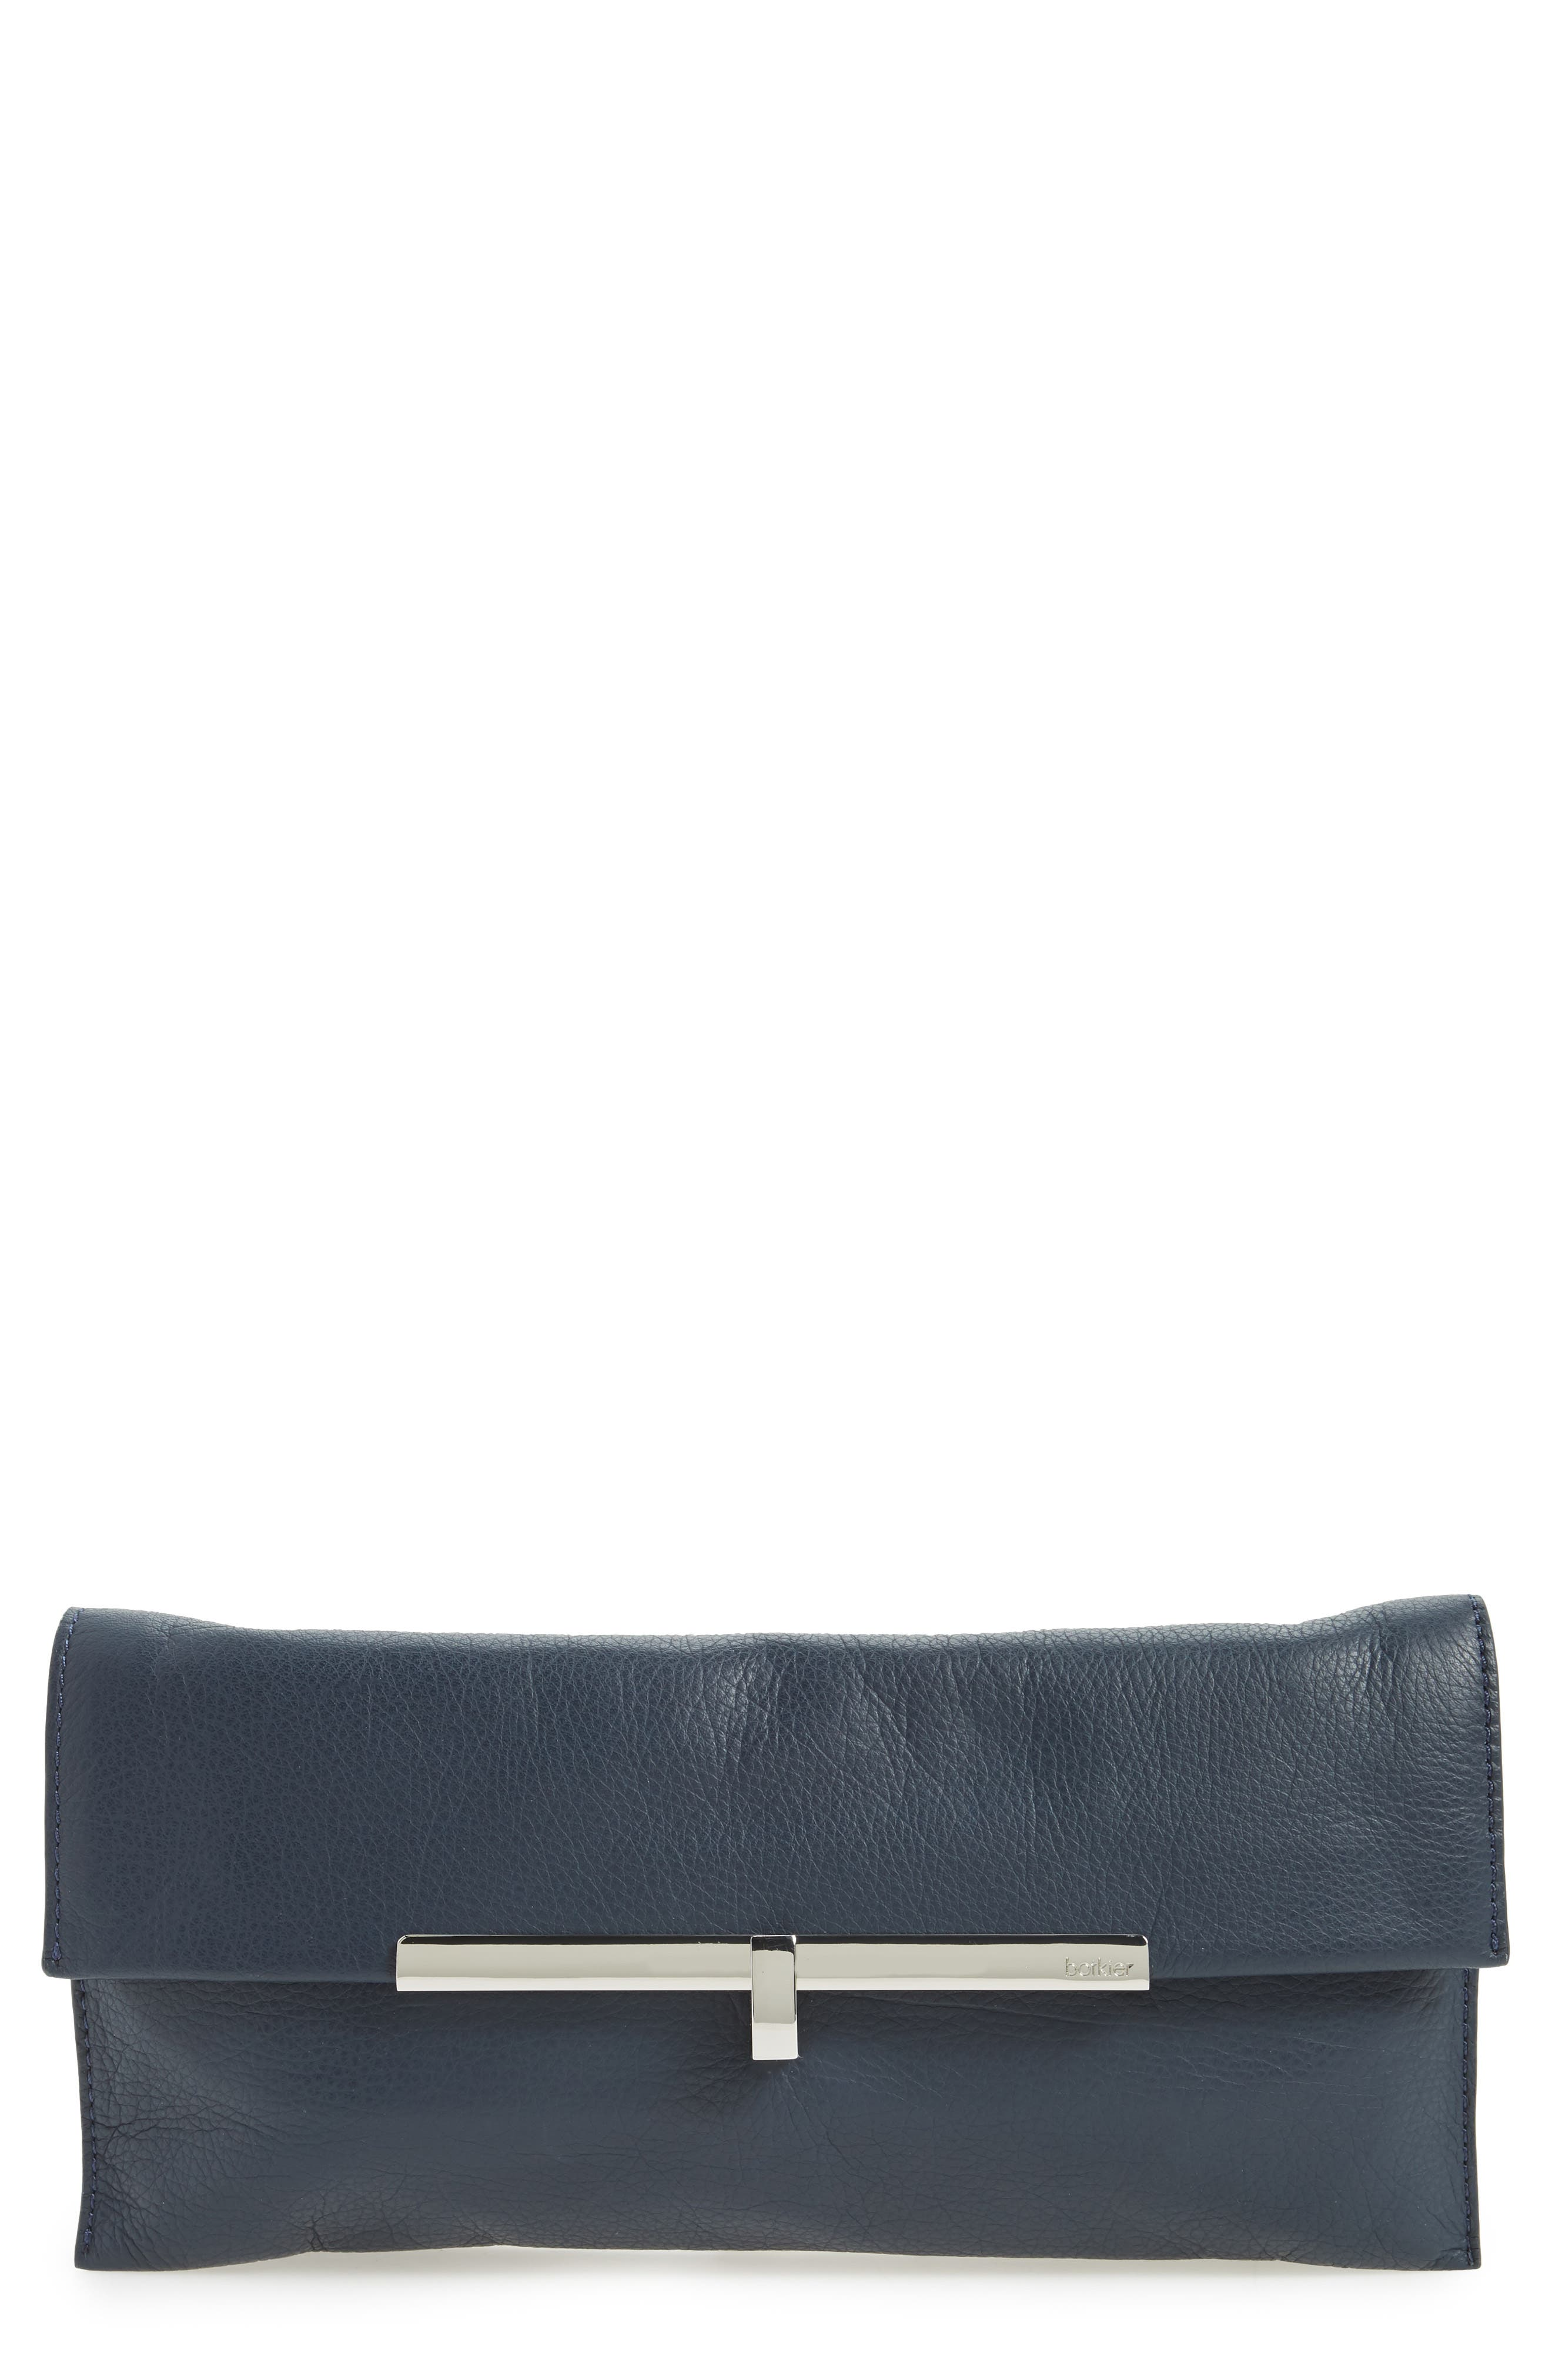 Alternate Image 1 Selected - Botkier Bleeker Leather Clutch